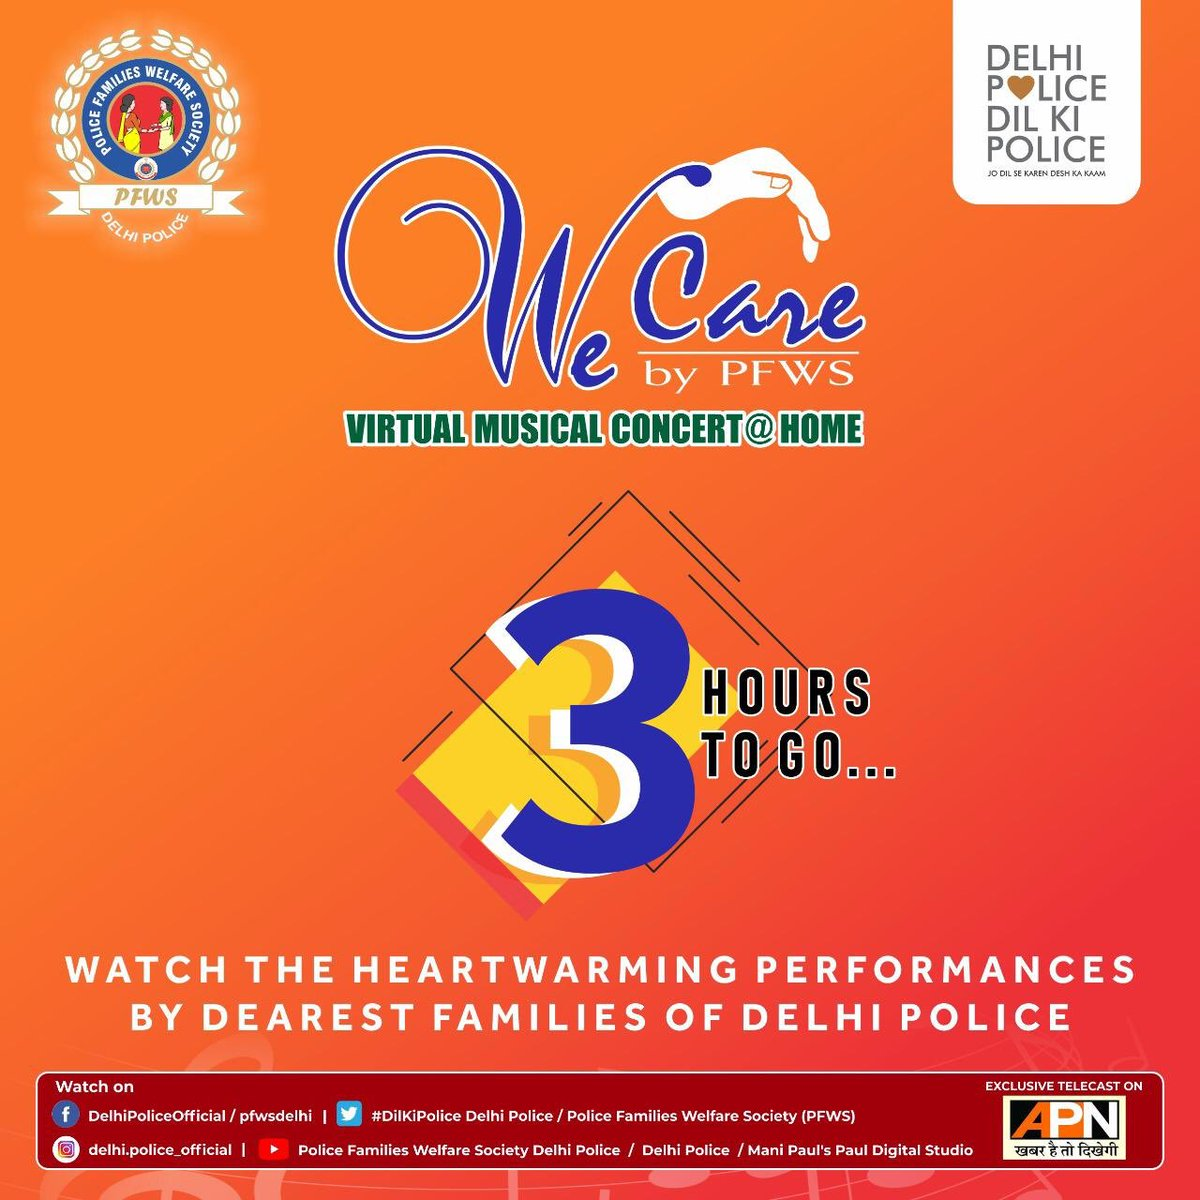 Watch the heartwarming performances by dearest families of Delhi Police in just 3 hours!